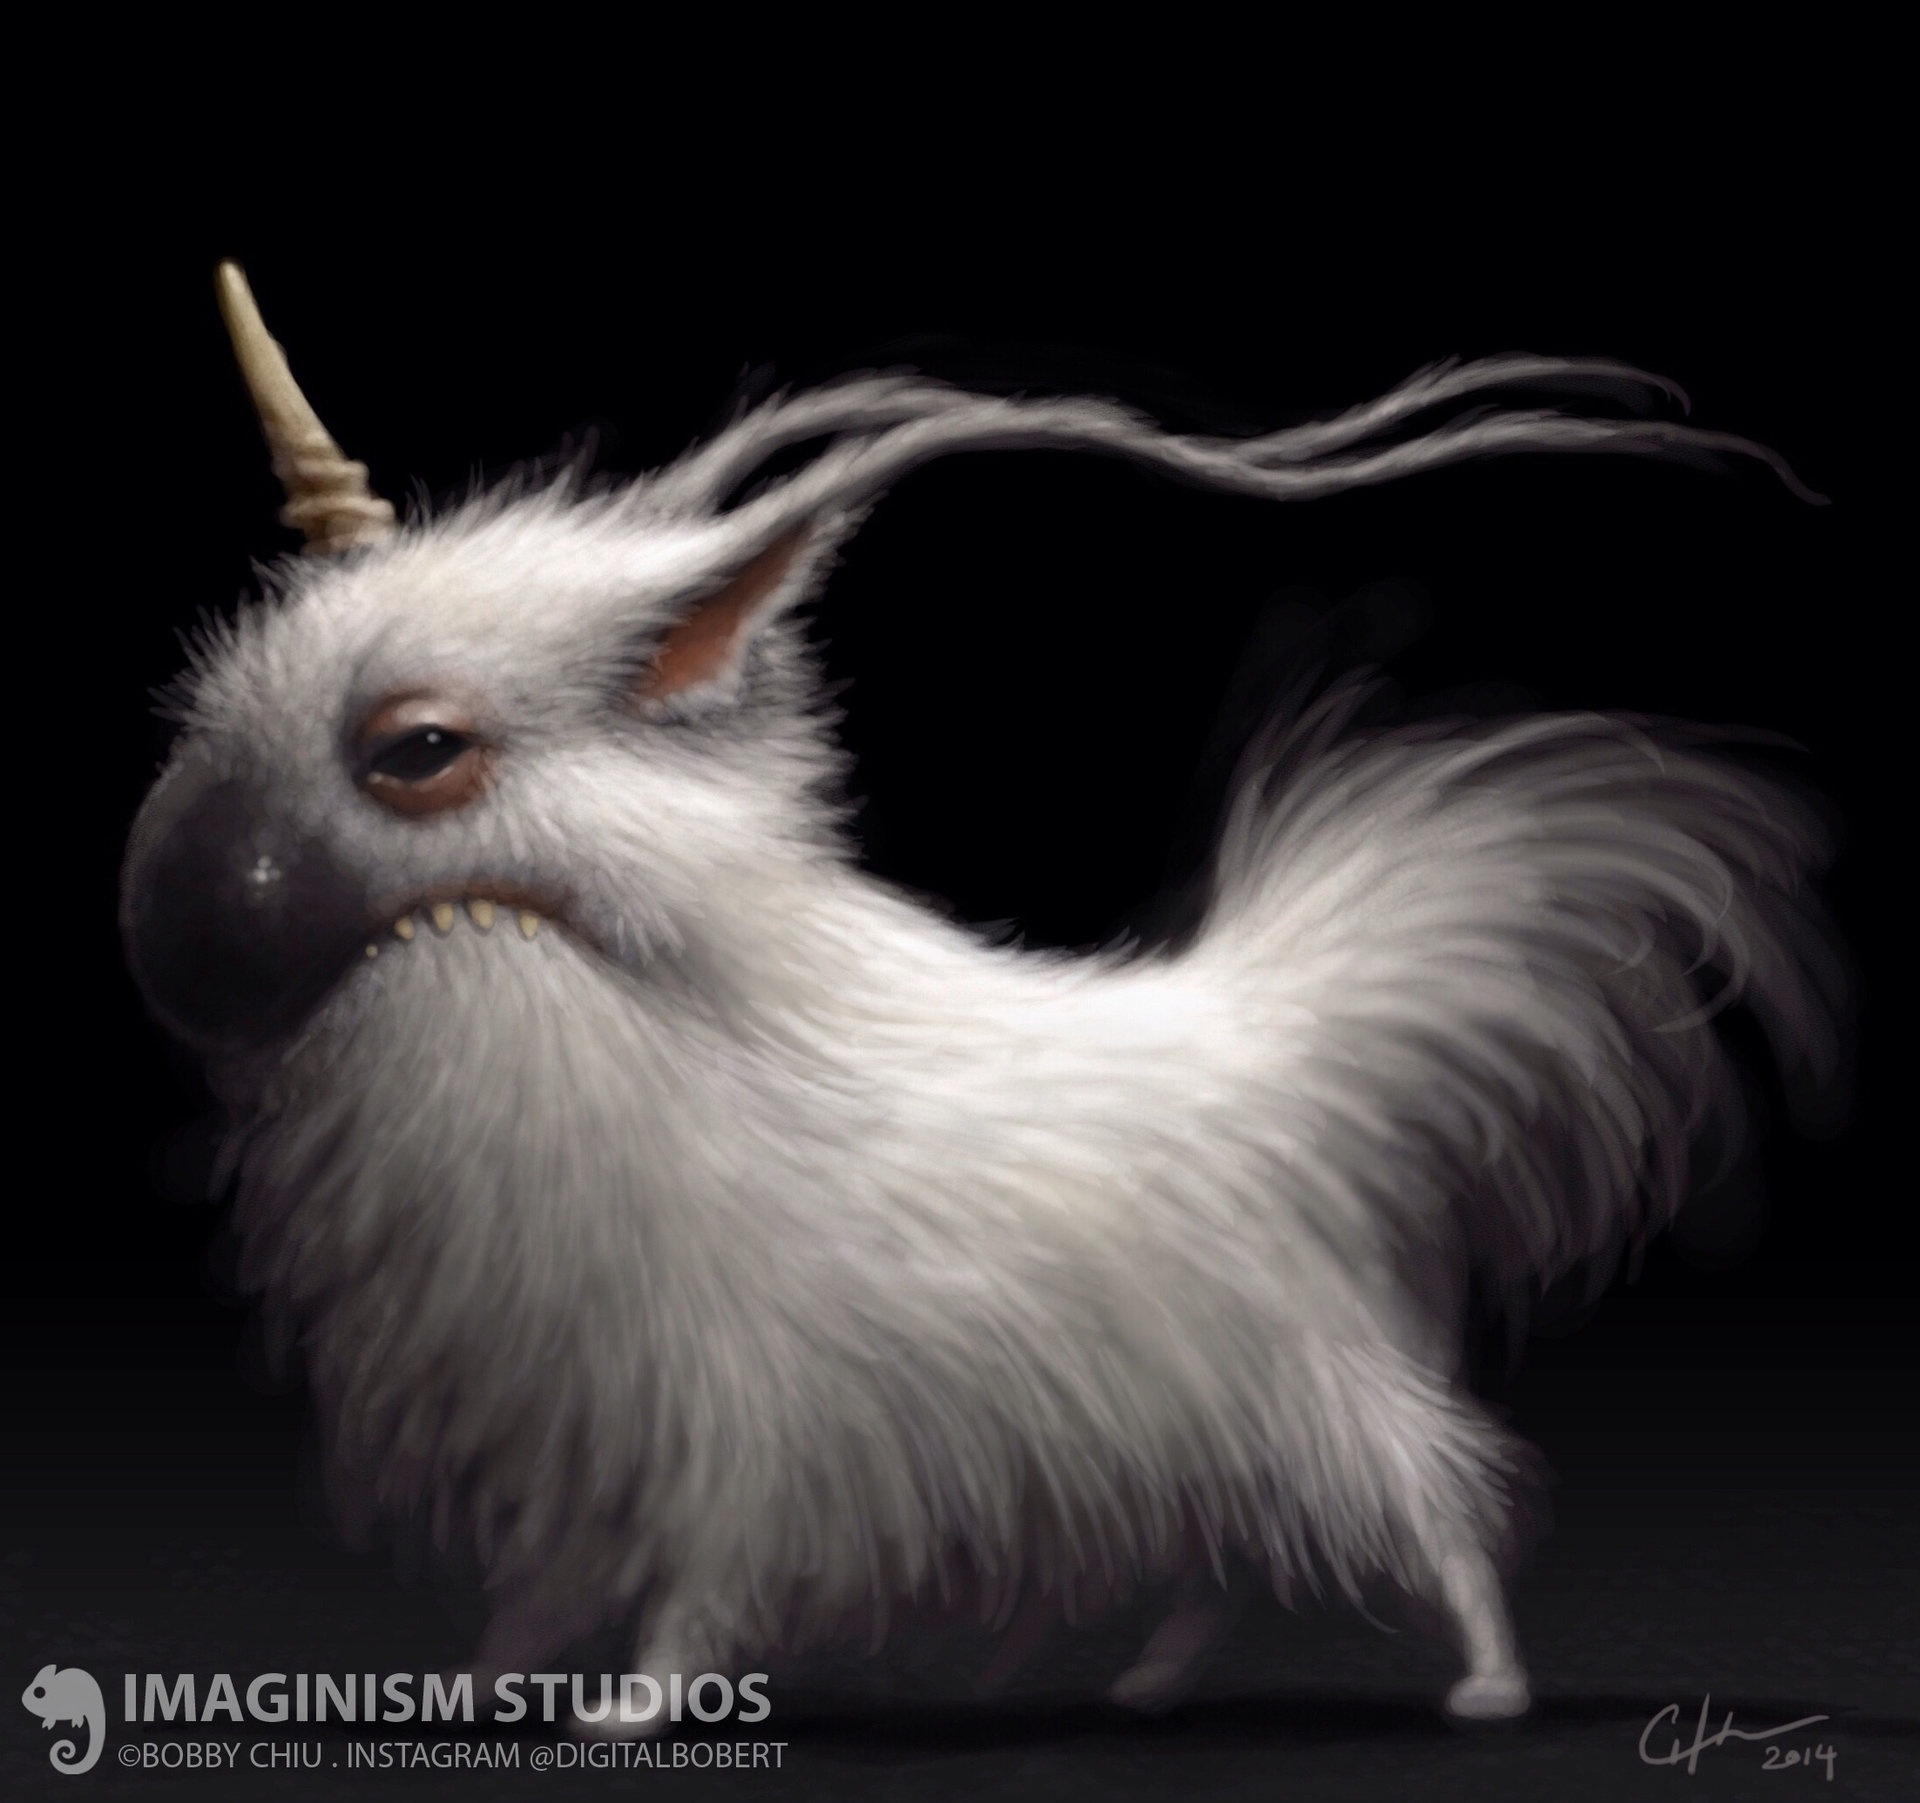 Bobby chiu scrappy little unicorn by imaginism d7fio36